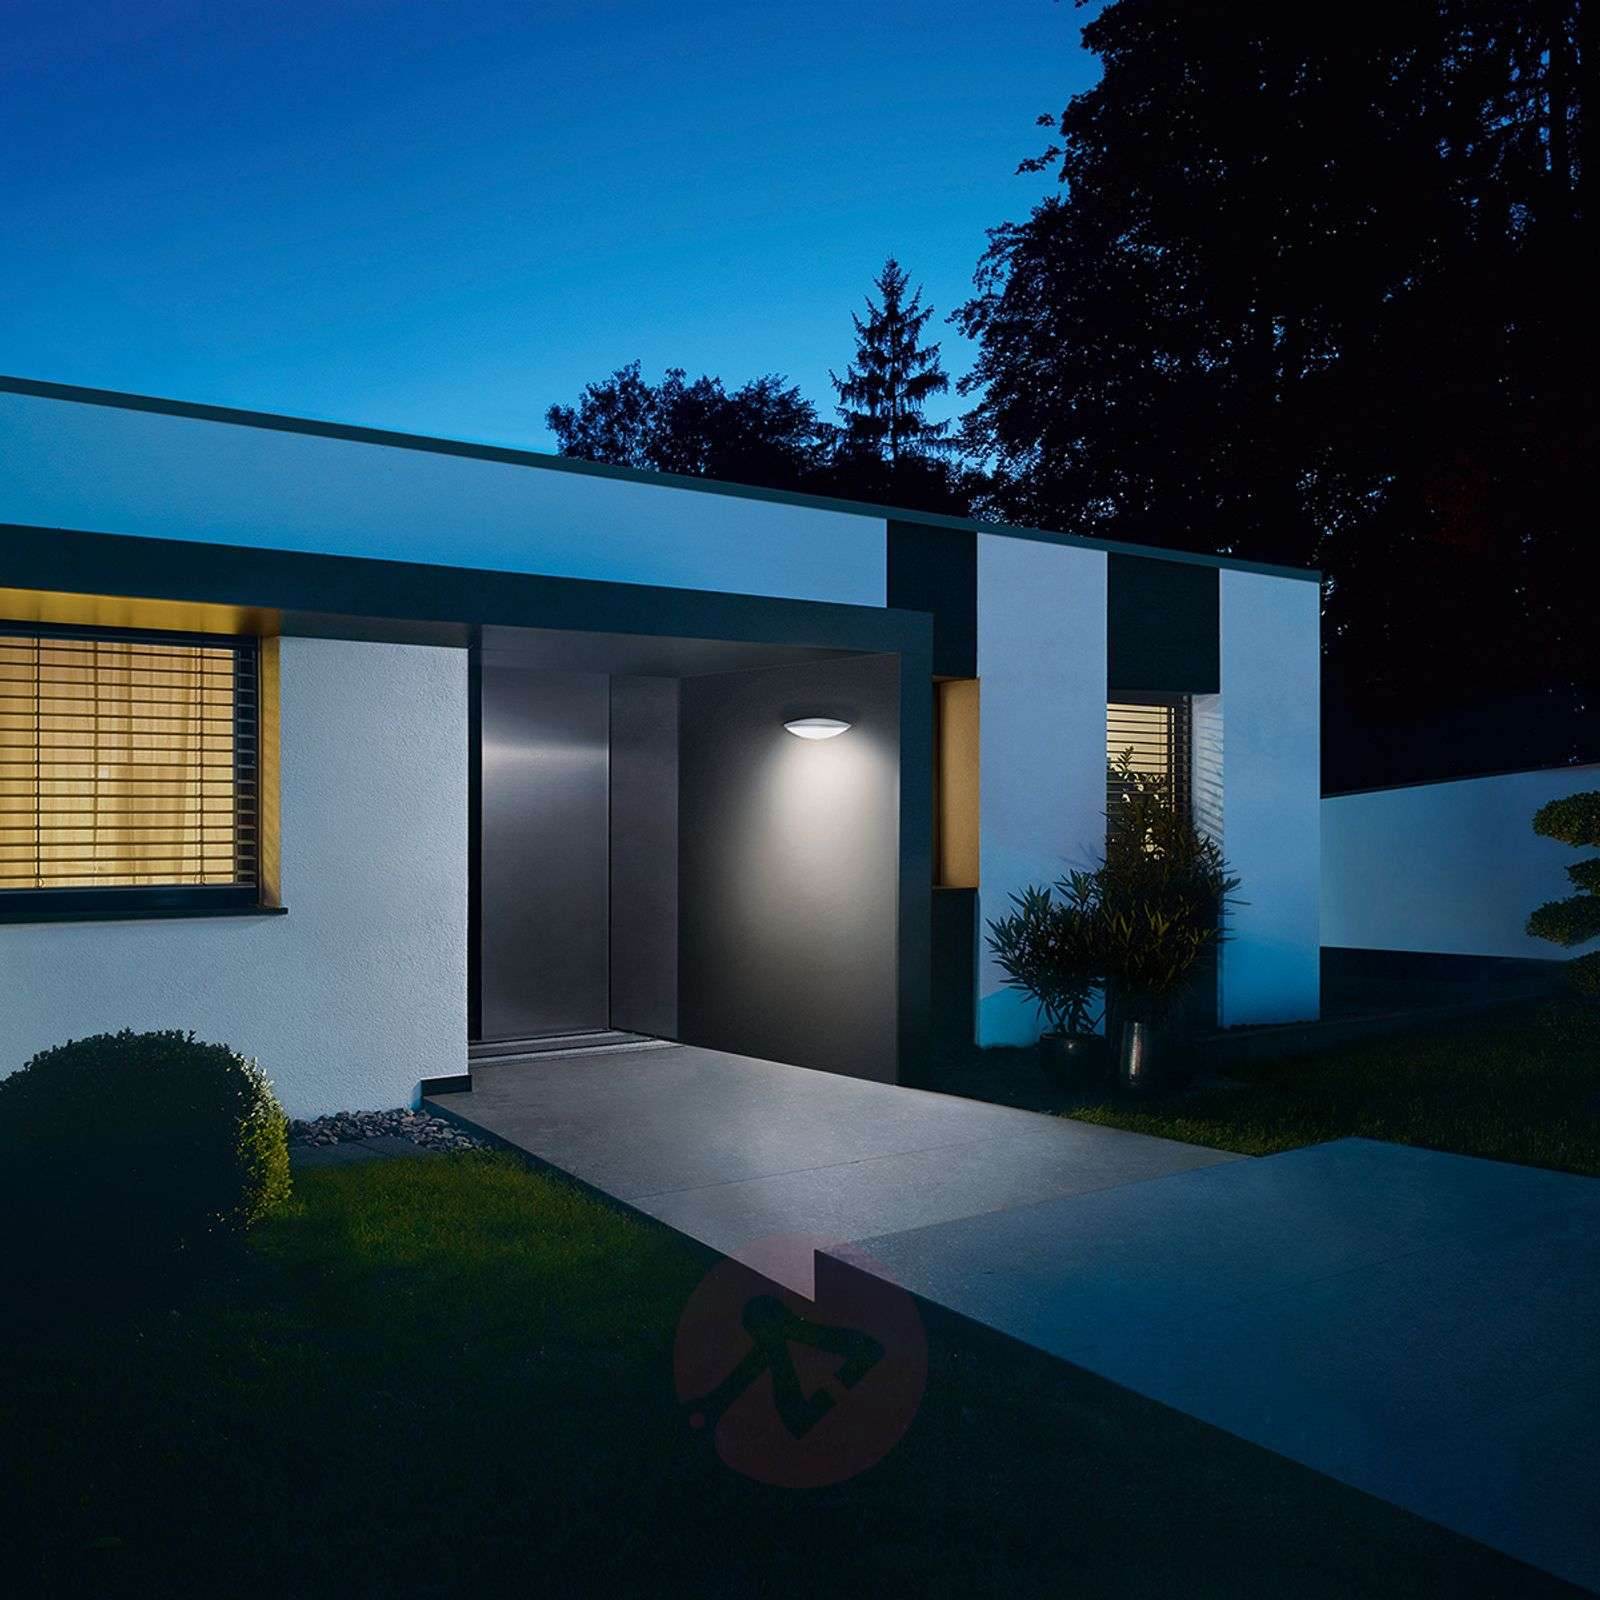 Anthracite Garden Wall Lights : L825 LED iHF outdoor wall light, sensor anthracite Lights.co.uk